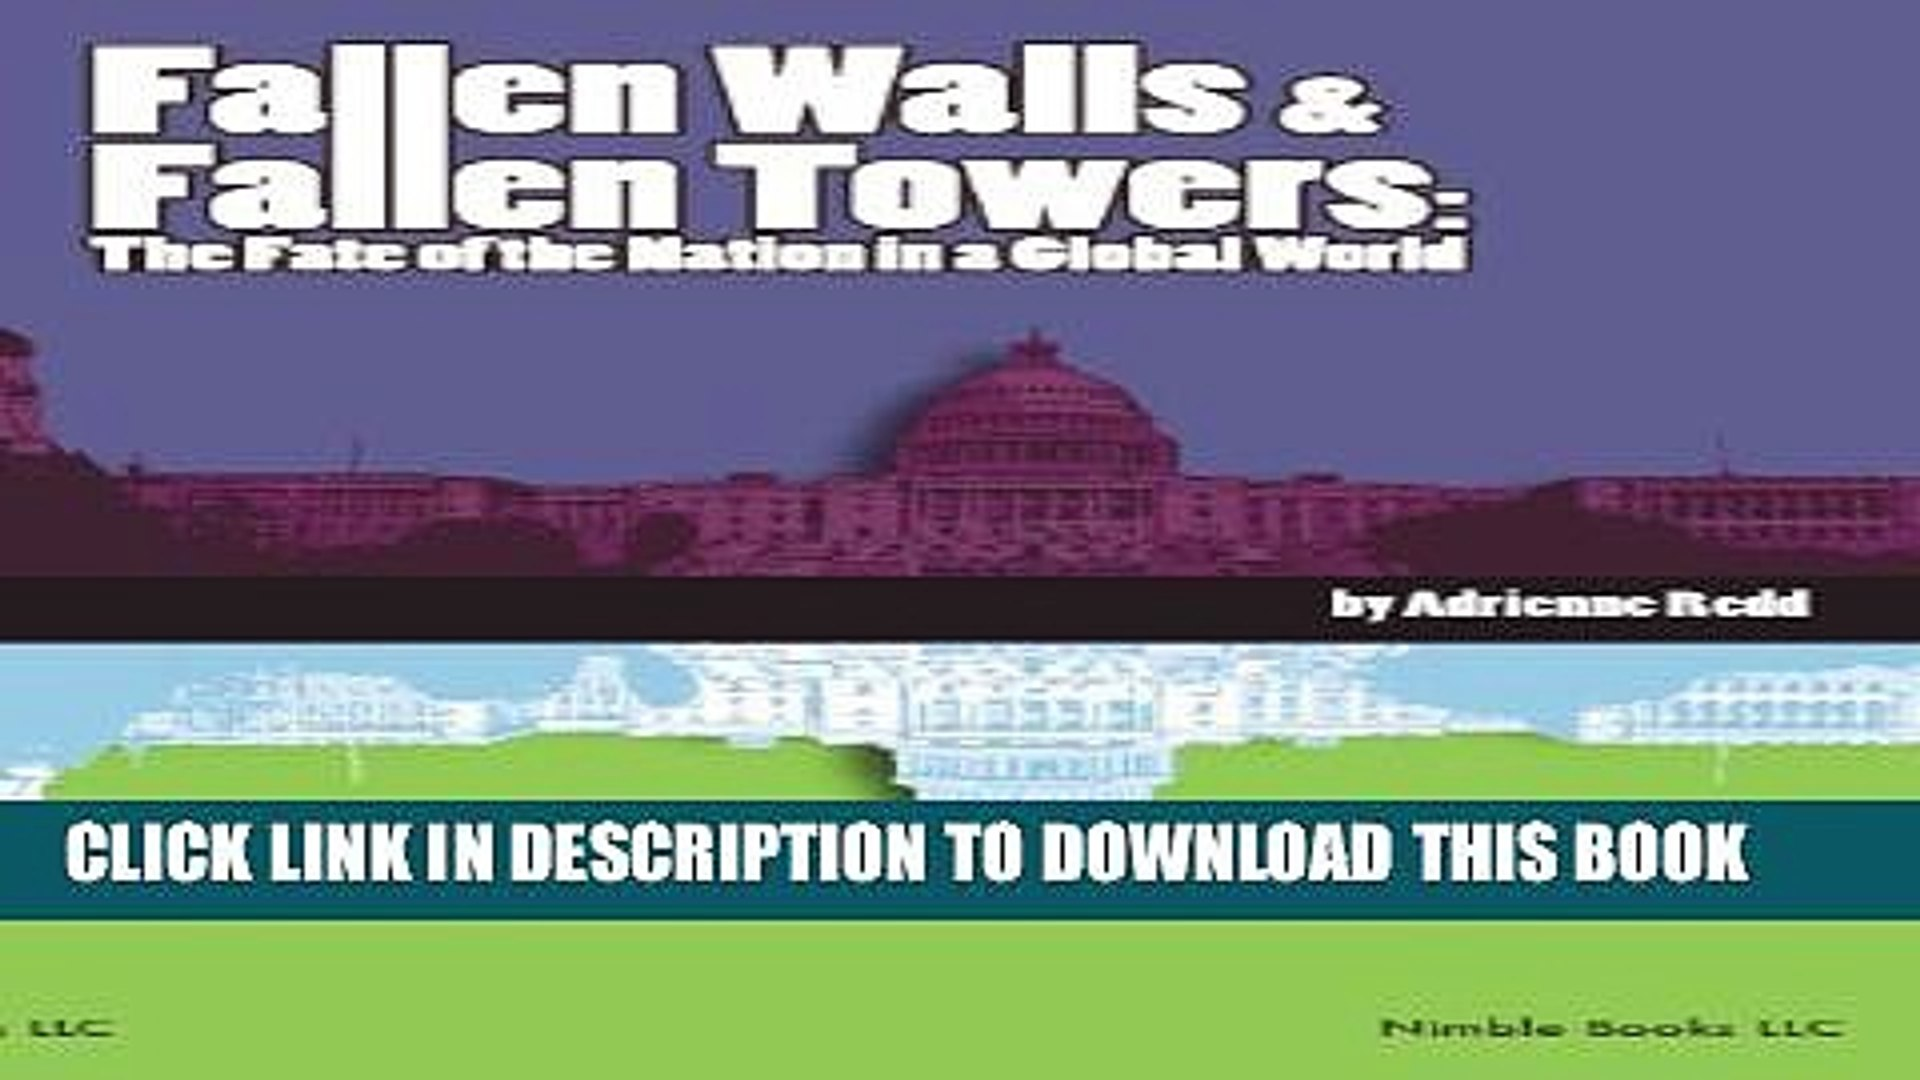 [New] Fallen Walls and Fallen Towers: The Fate of the Nation in a Global World Exclusive Full Ebook